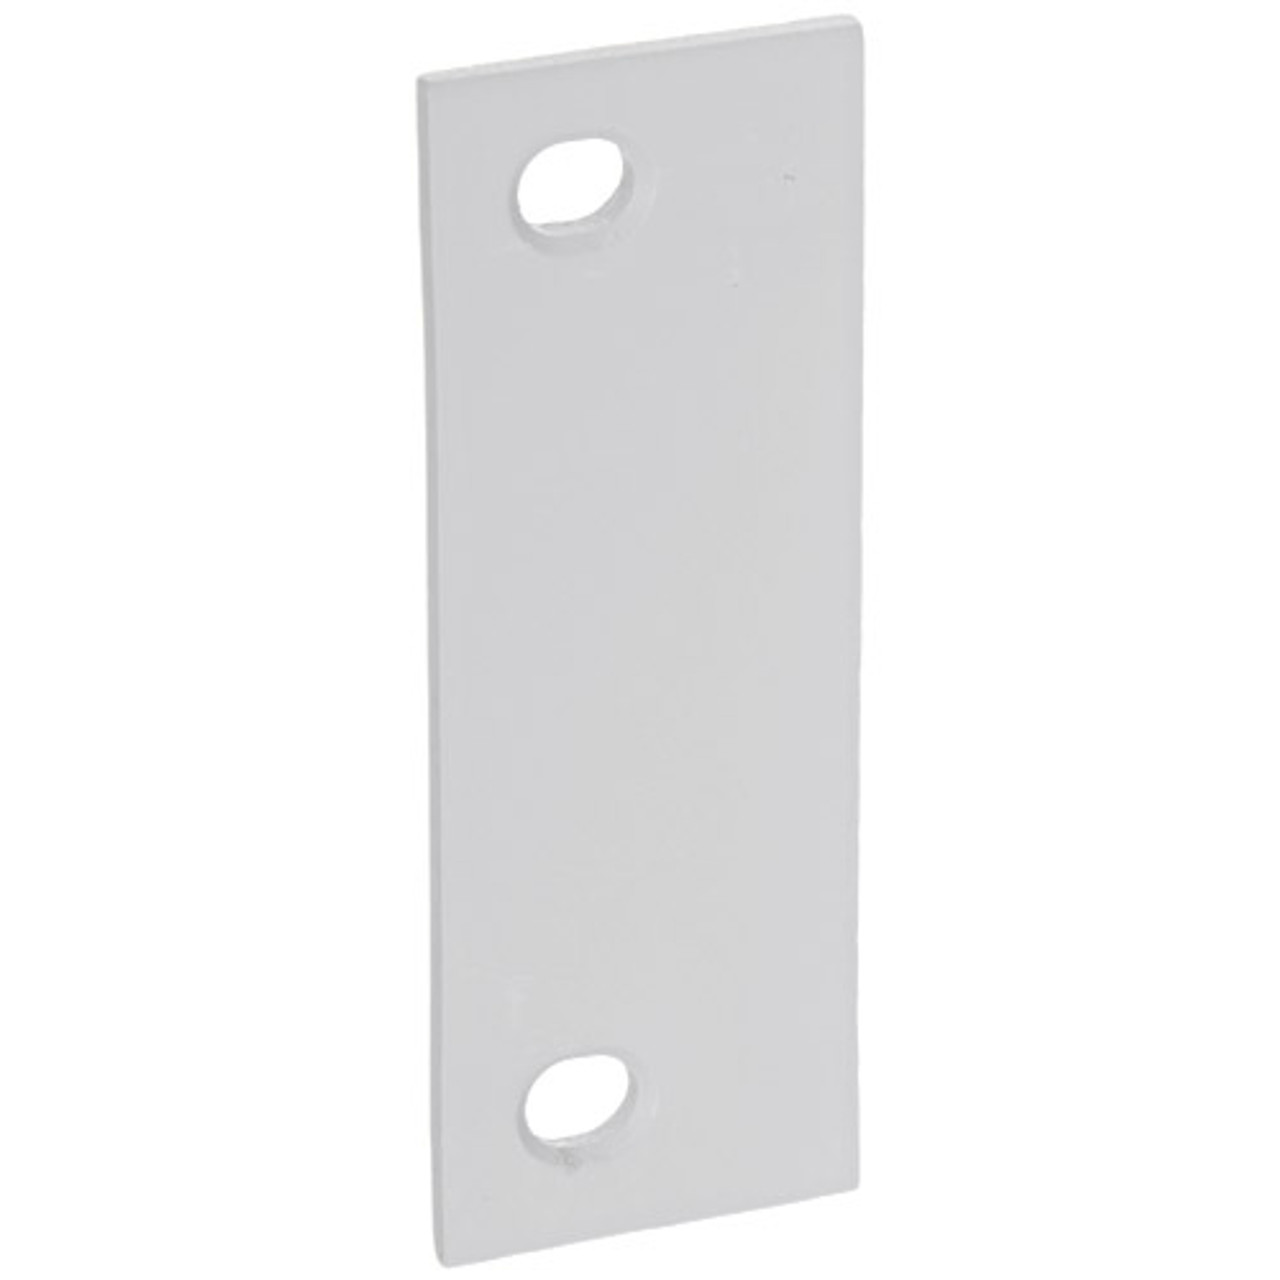 FF-50-CP Don Jo Filler Plate in Chrome Plated Finish